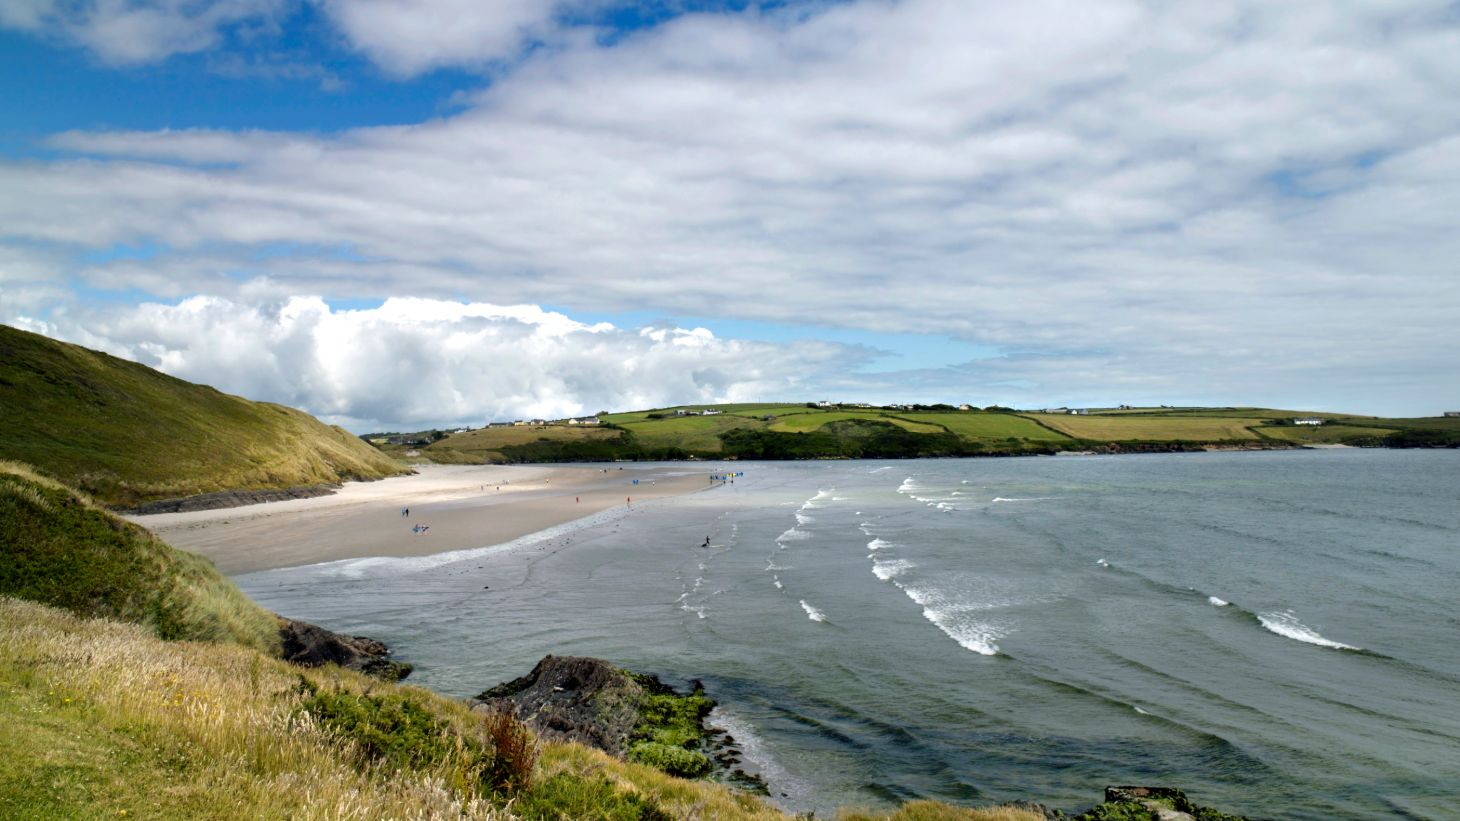 The beautiful Inchydoney Beach, Clonakilty, Co. Cork.